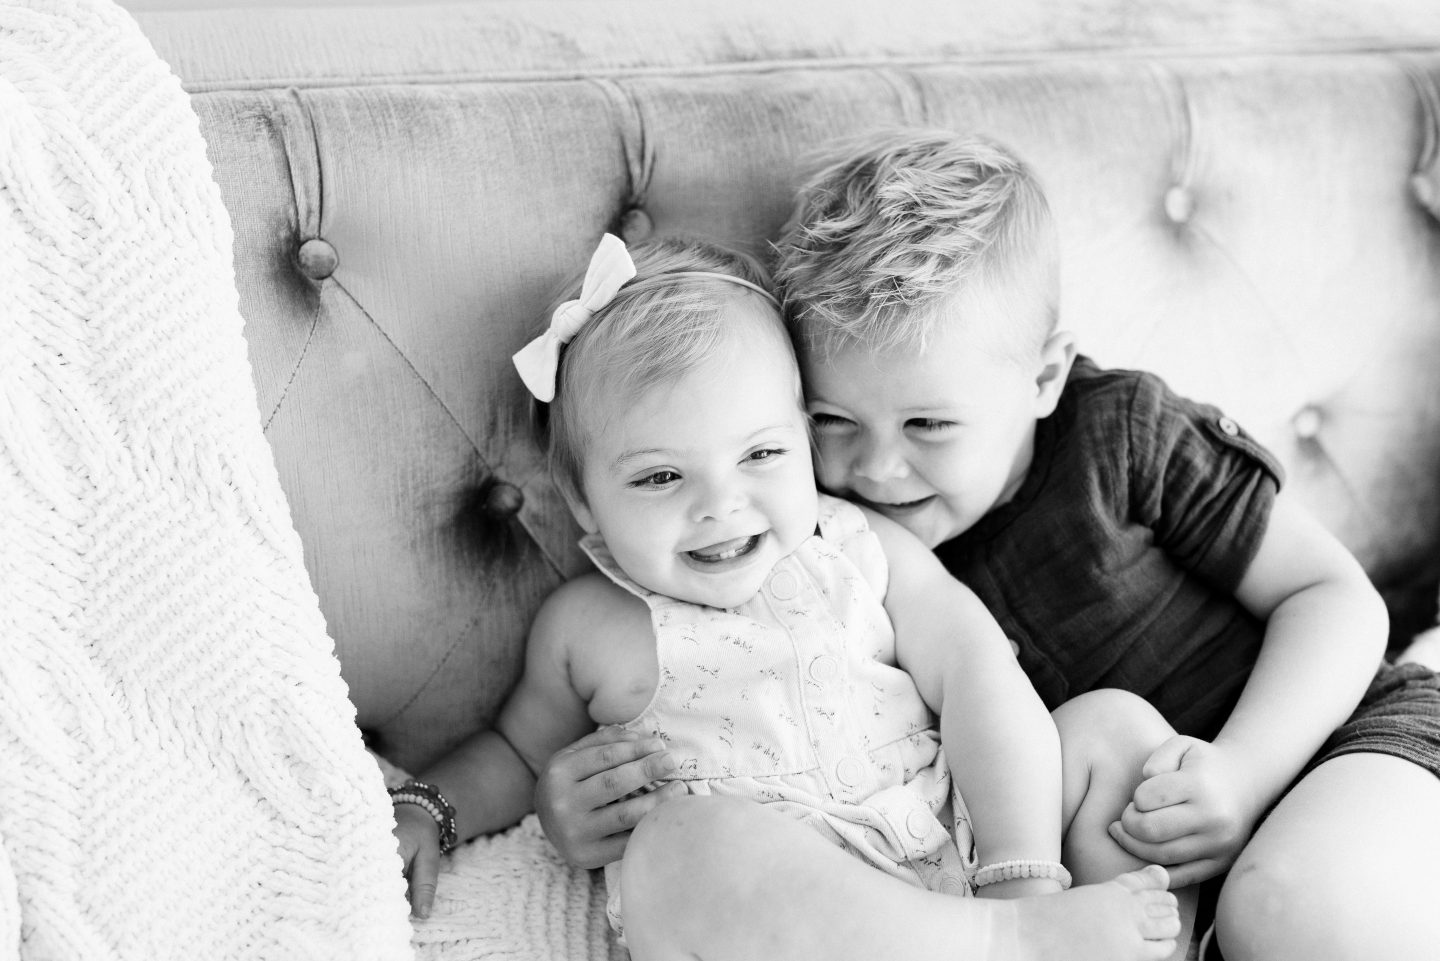 One Year Old Milestones by popular San Diego motherhood blog, Navy Grace: image of a baby girl and her brother sitting together on a grey tuft couch.